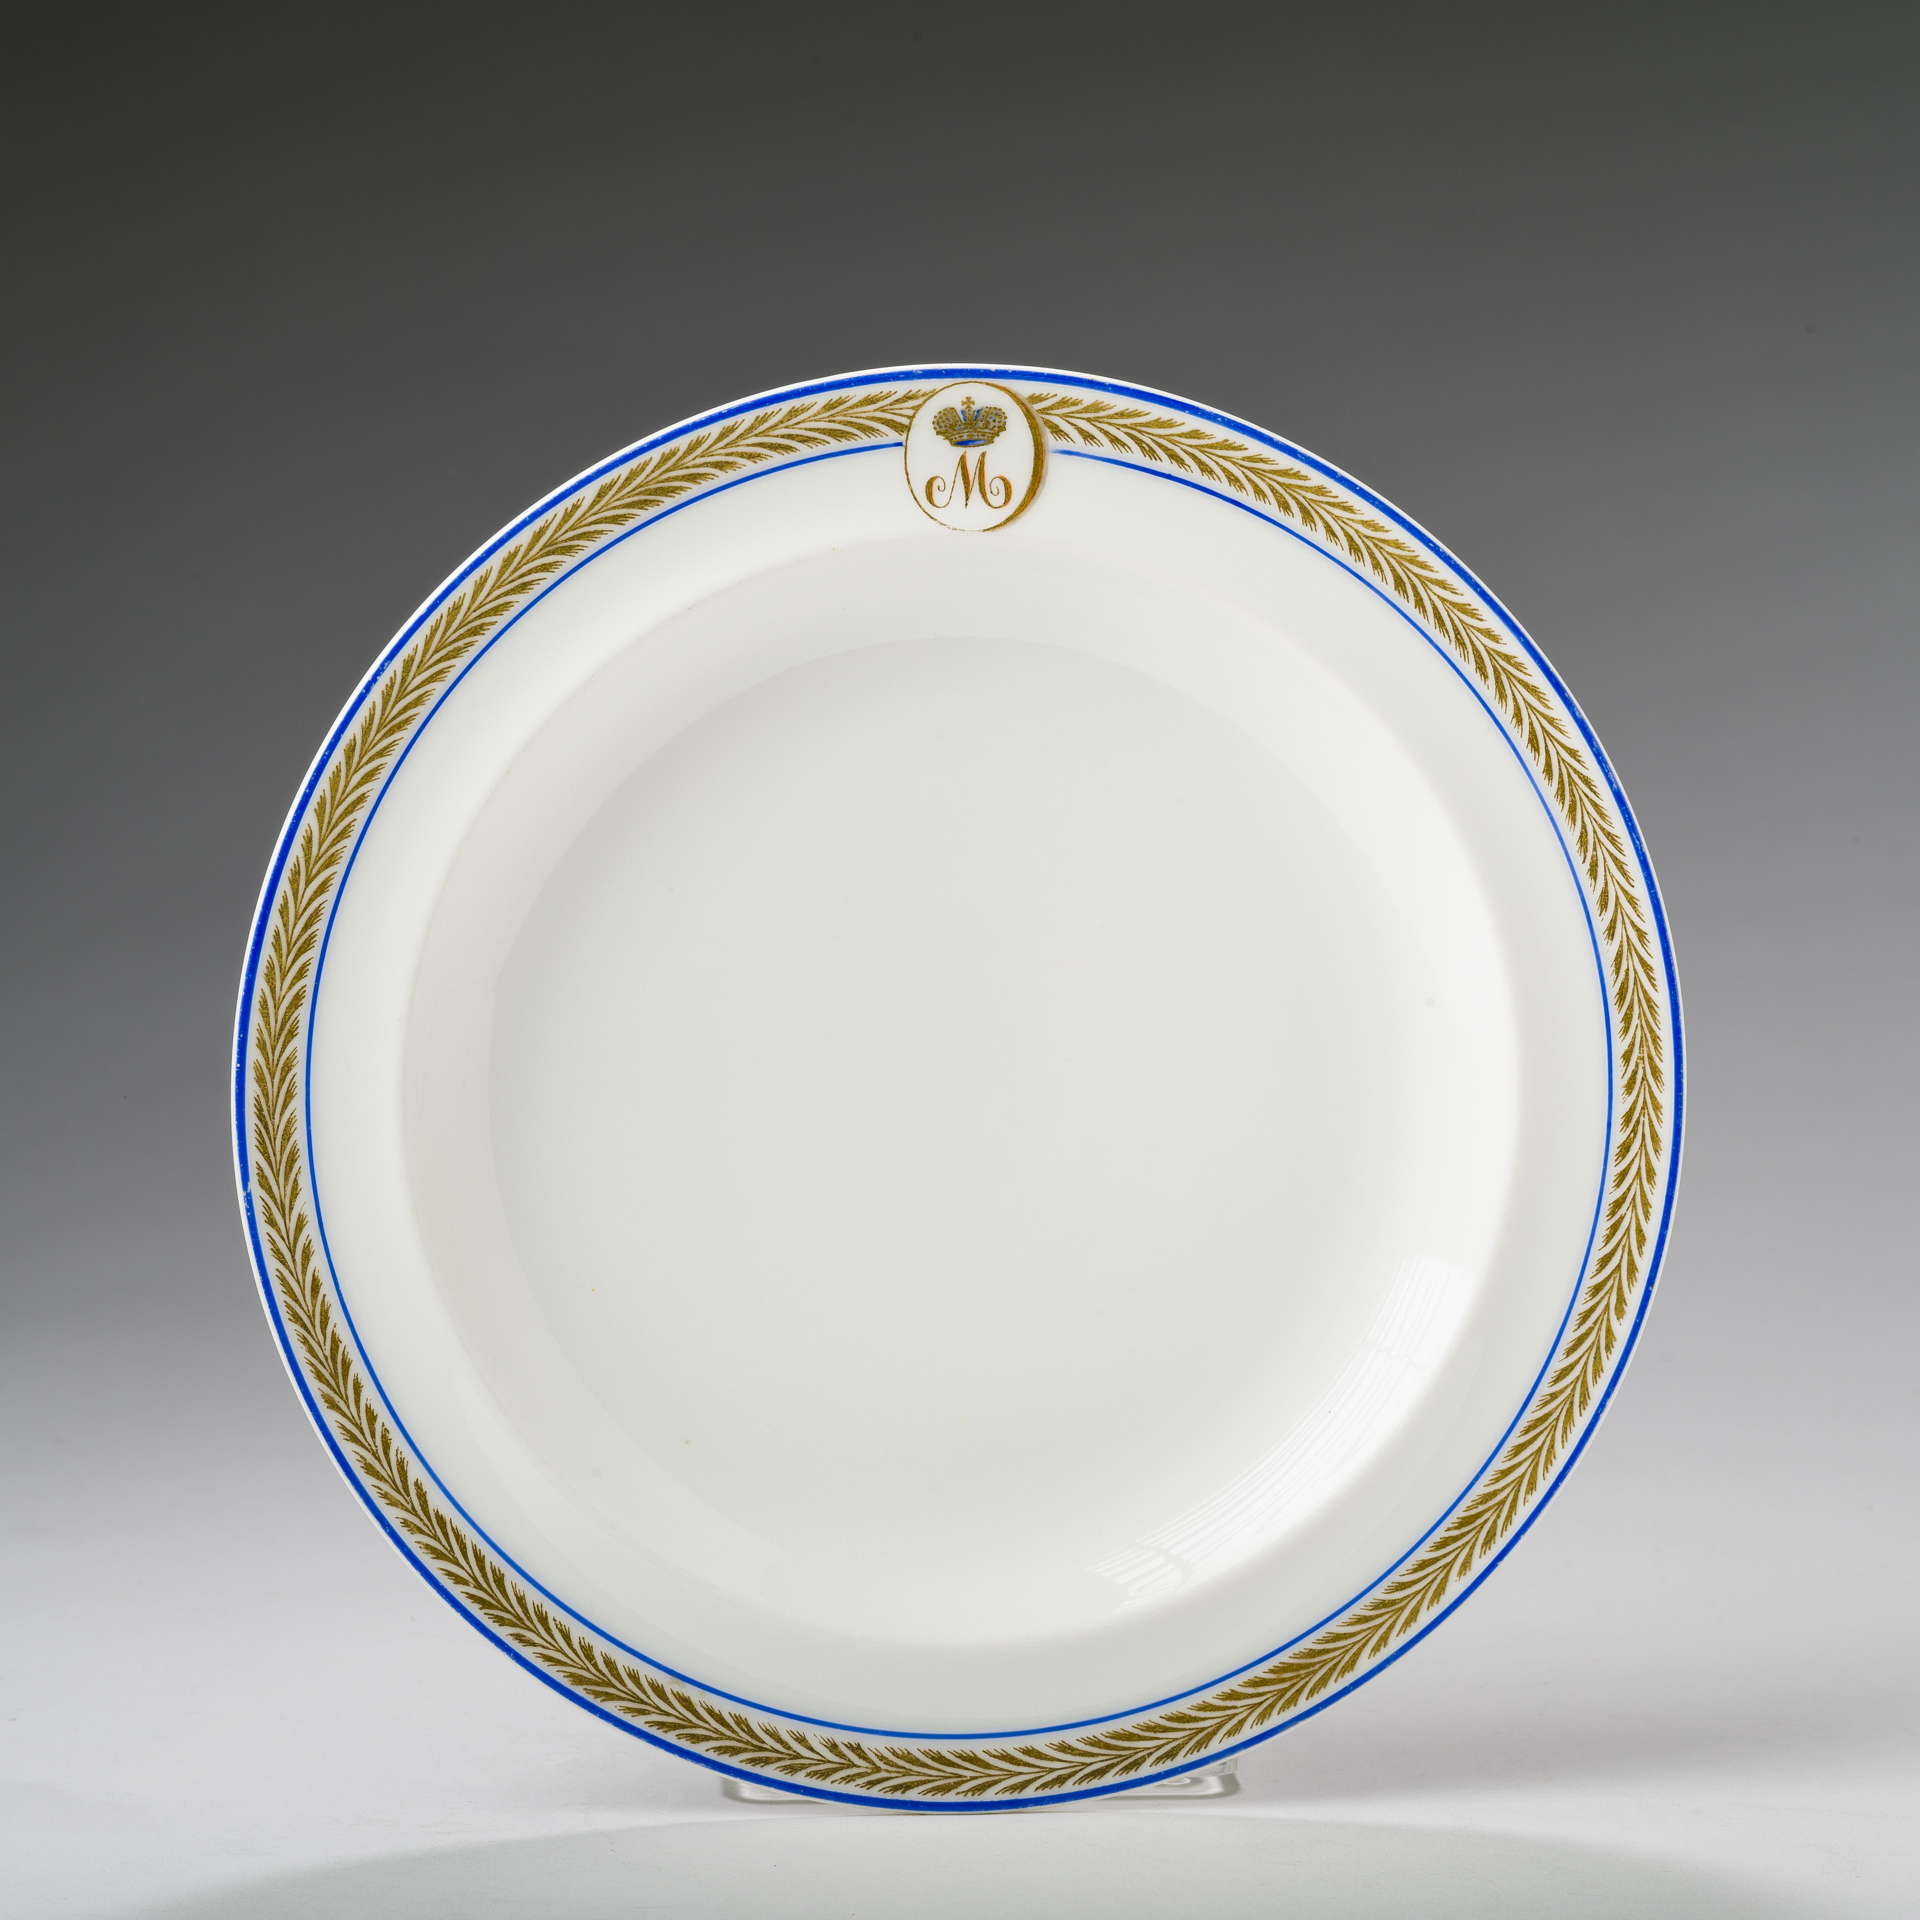 b2d9292b RUSSIAN PORCELAIN DESSERT PLATE FROM THE SERVICE OF GRAND DUKE MICHAEL  NICHOLAEVICH, KORNILOV BROTHERS FACTORY, ST. PETERSBURG, CIRCA 1900.